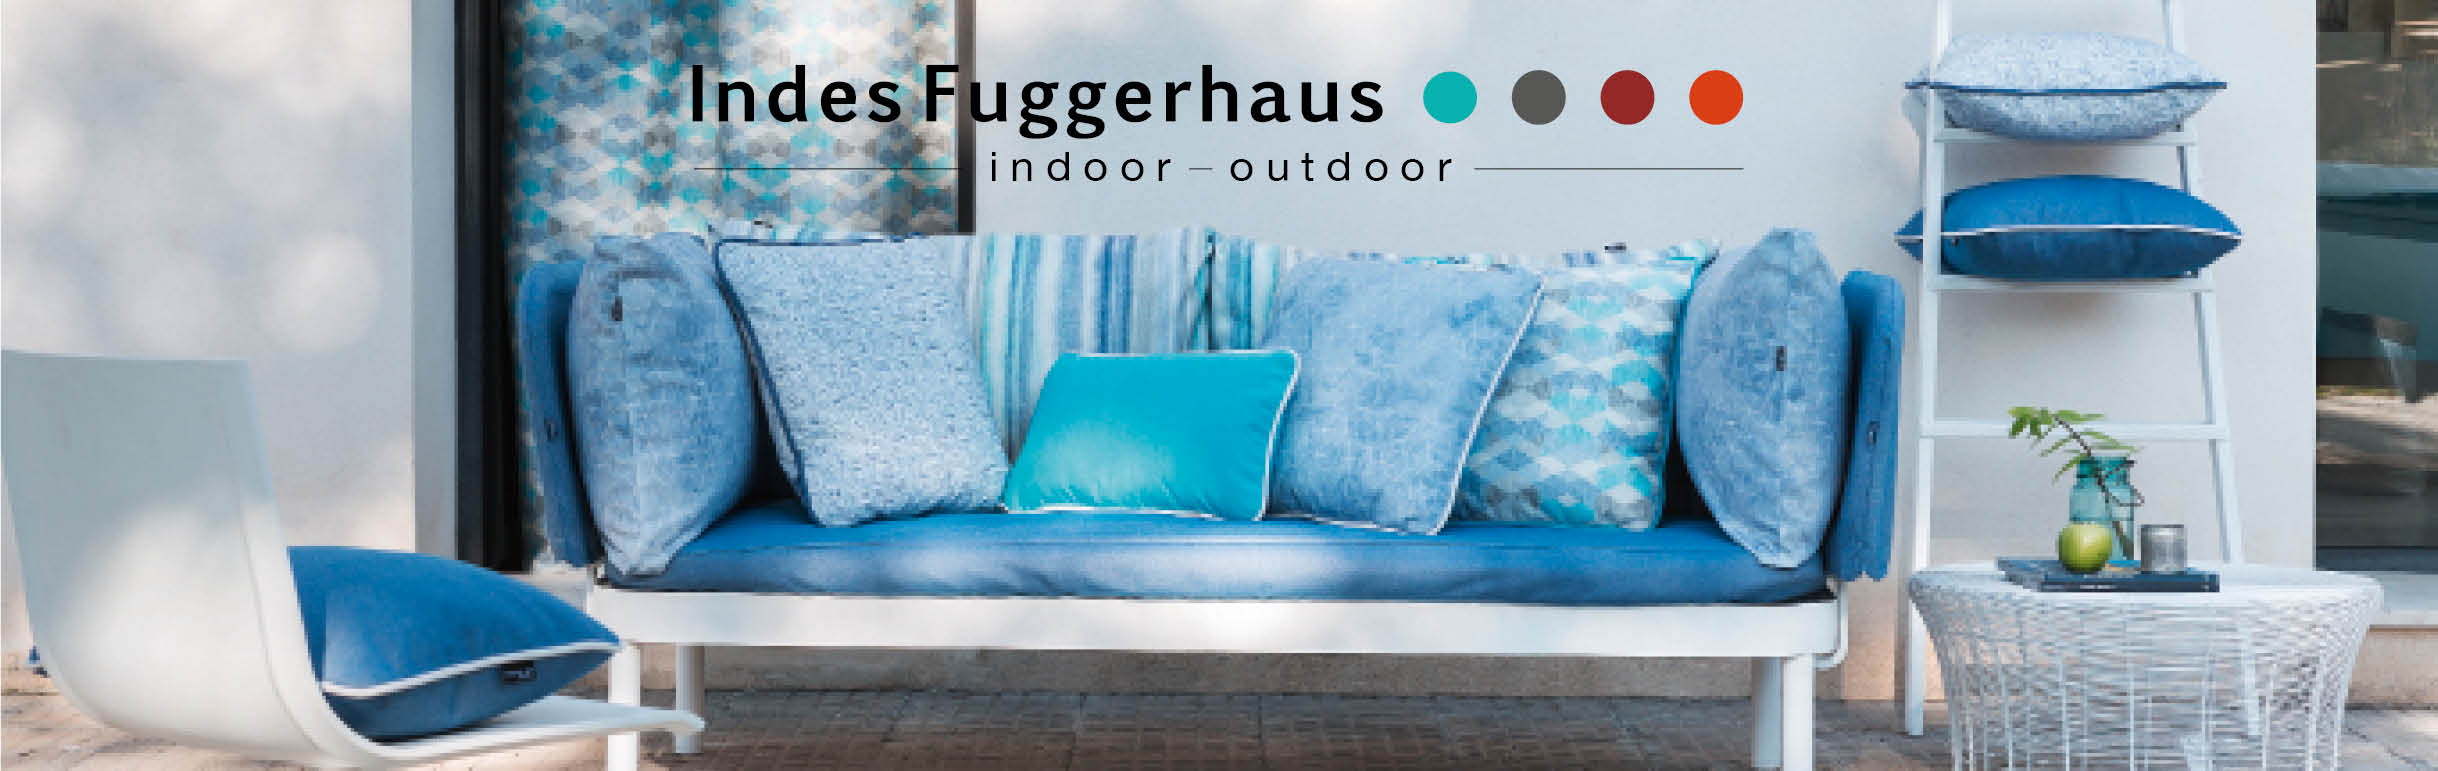 Indes Fuggerhaus Kollektion Indoor Outdoor Summertime